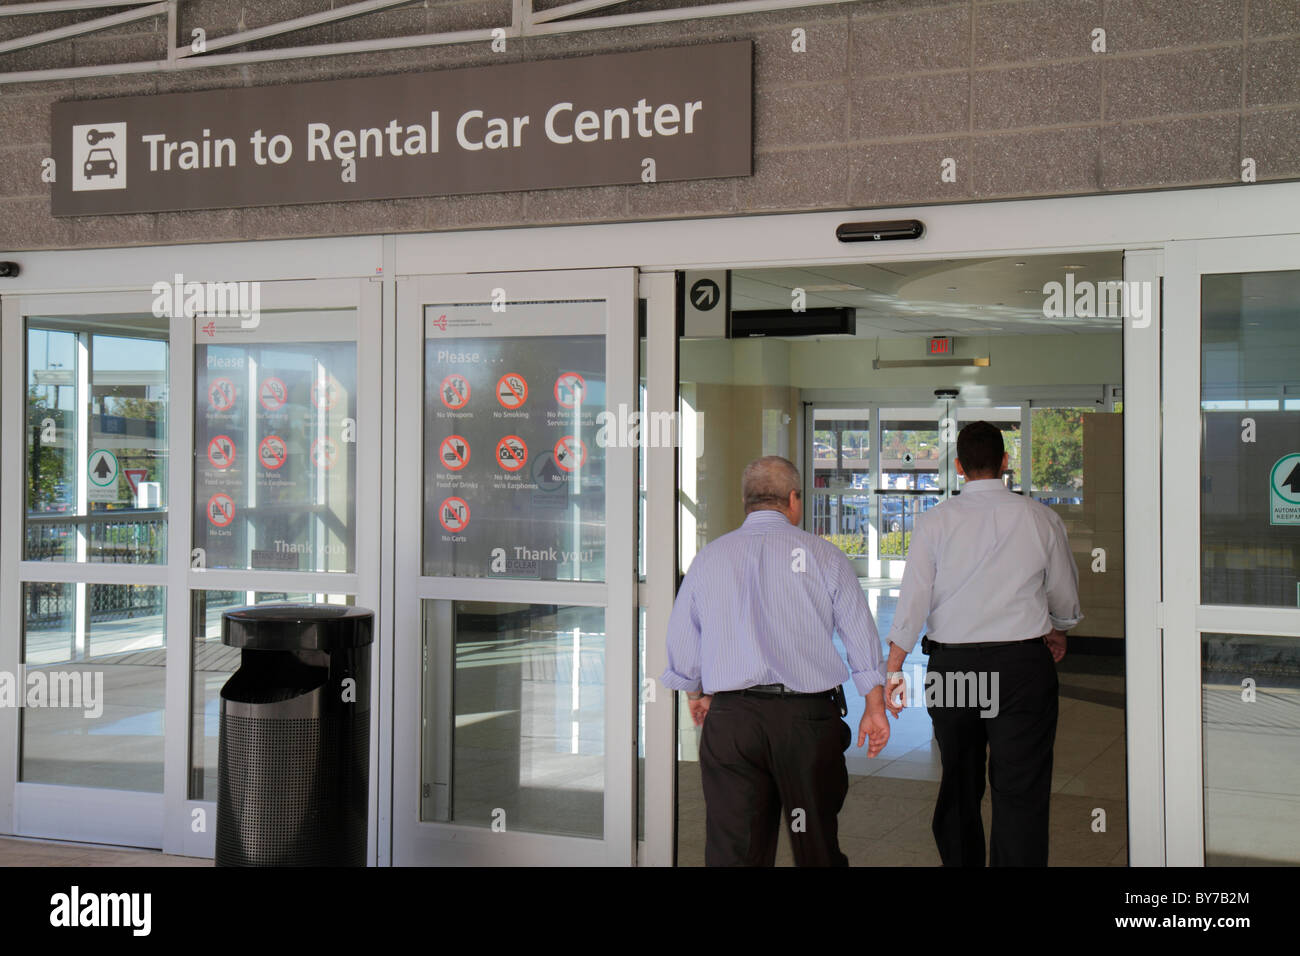 Car Parking Near Hertz Rental Car Airport Atlanta